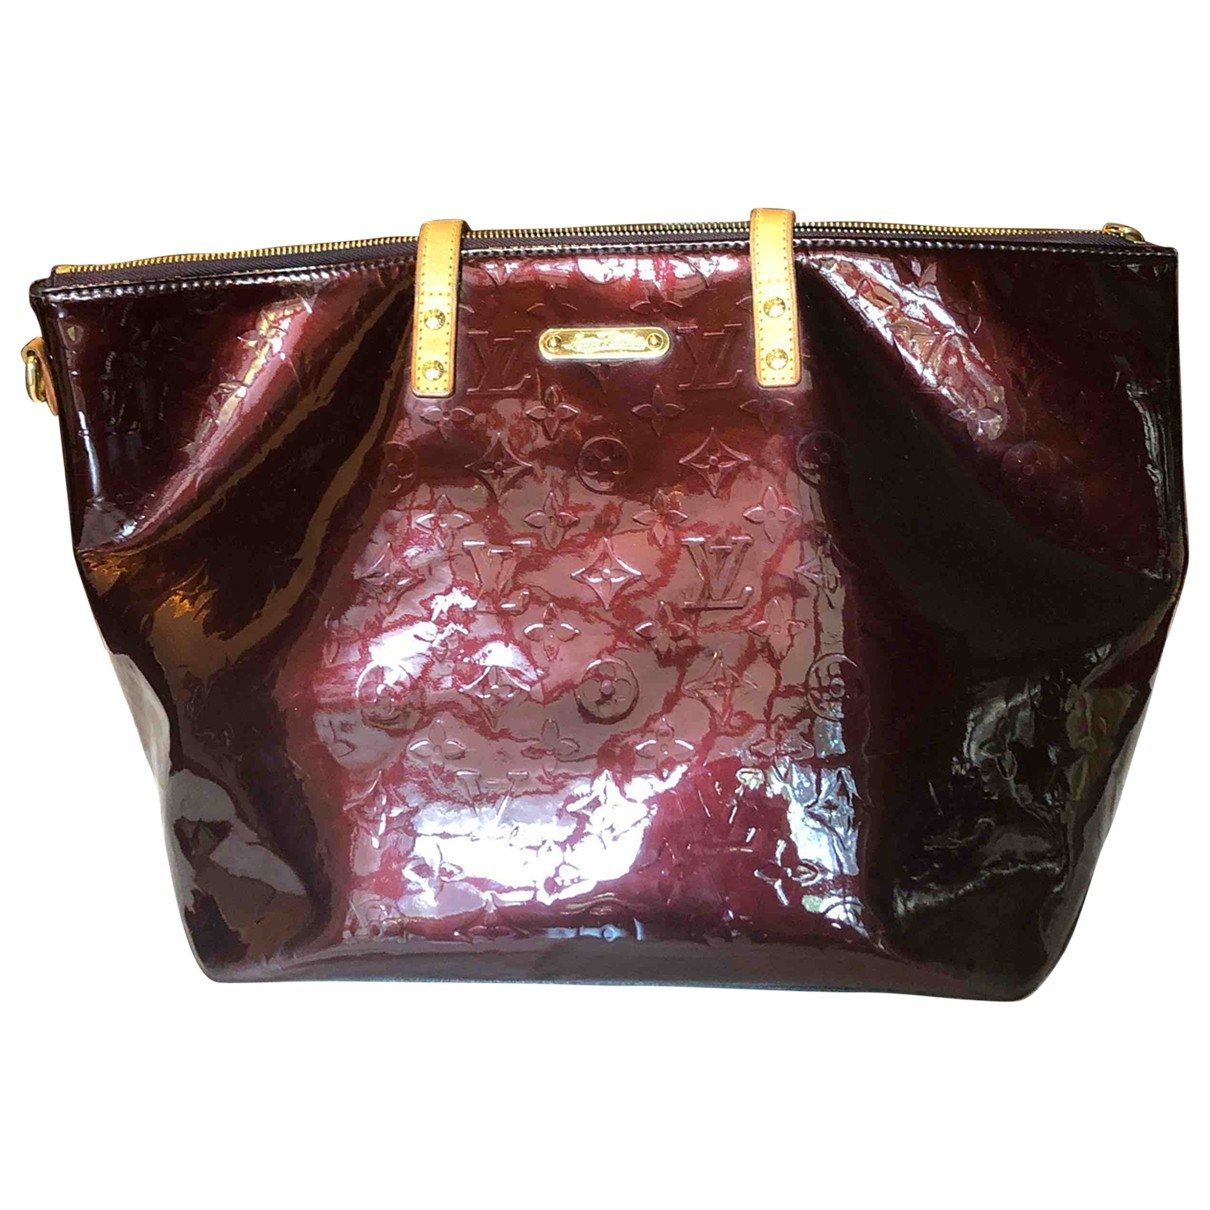 Louis Vuitton Bellevue Burgundy Patent leather handbag for Women \N